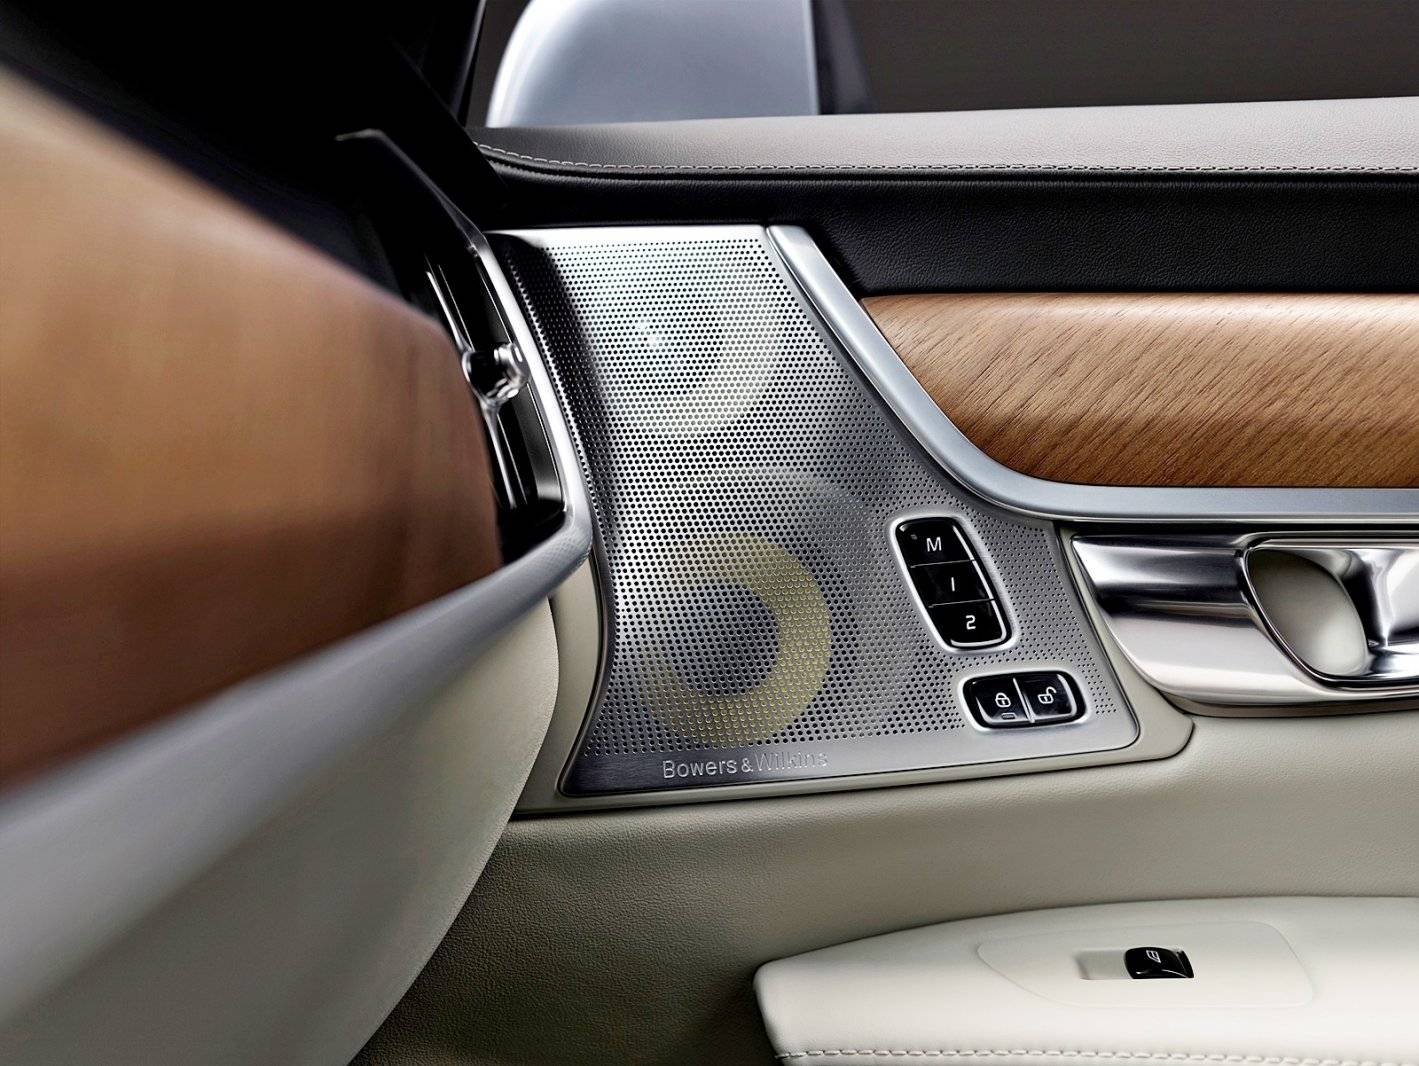 19 keer bowers wilkins in nieuwe volvo s90 autonieuws. Black Bedroom Furniture Sets. Home Design Ideas